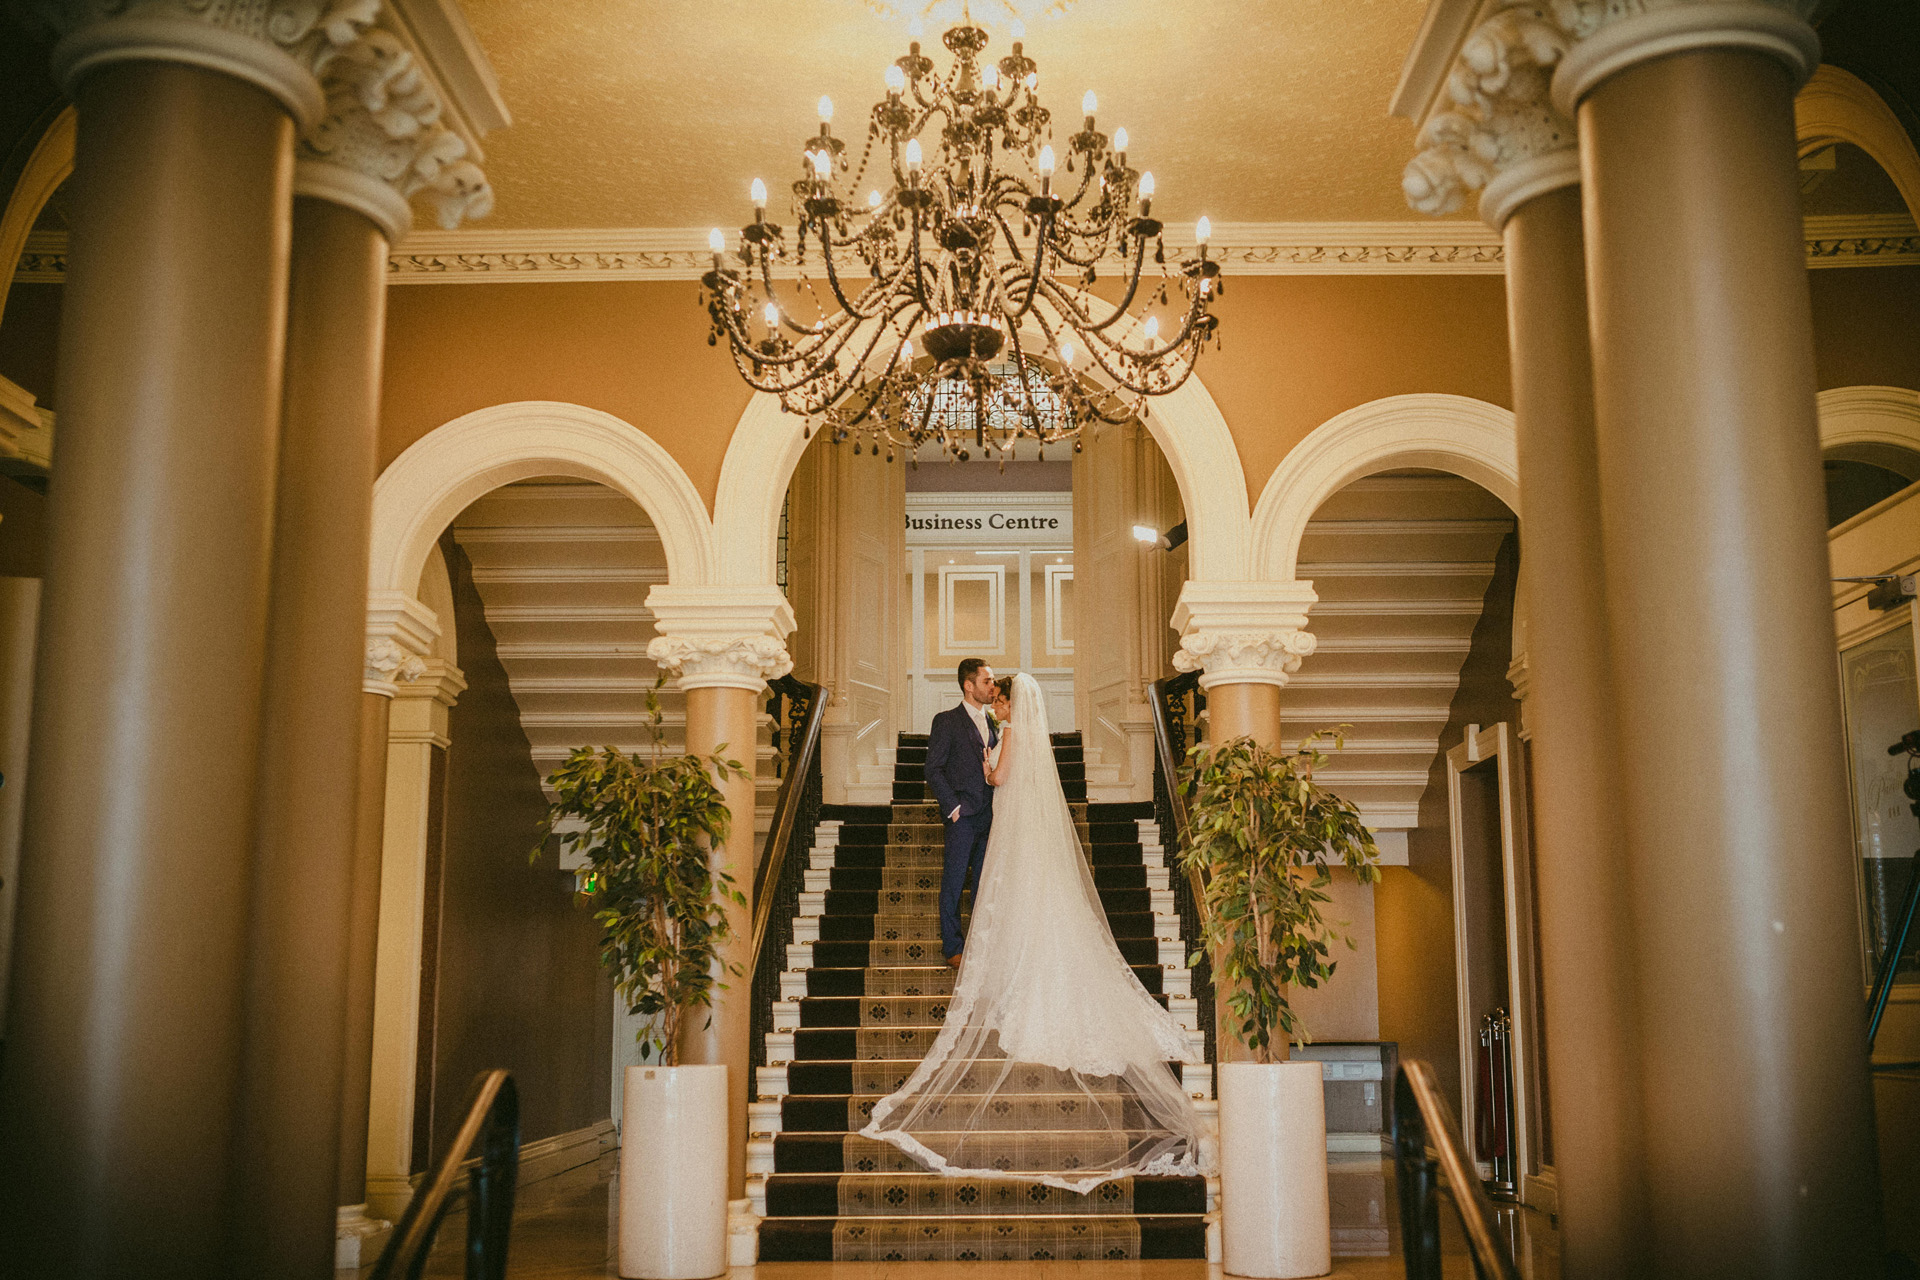 Royal-marine-hotel-wedding-photos6